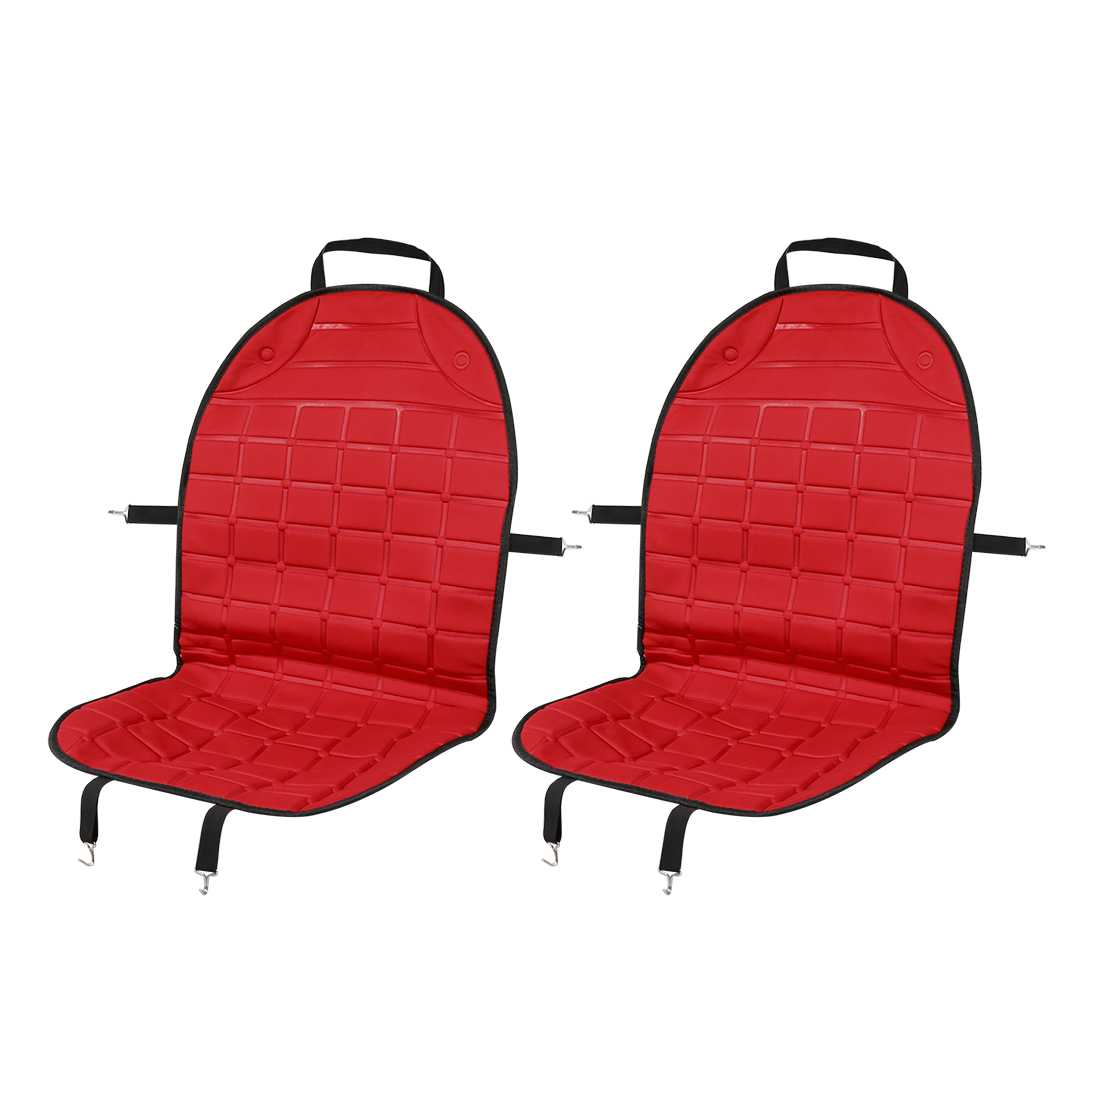 2pcs Universal DC 12V Heated Car Front Seat Heating Chair Cushion Warmer Pad Red